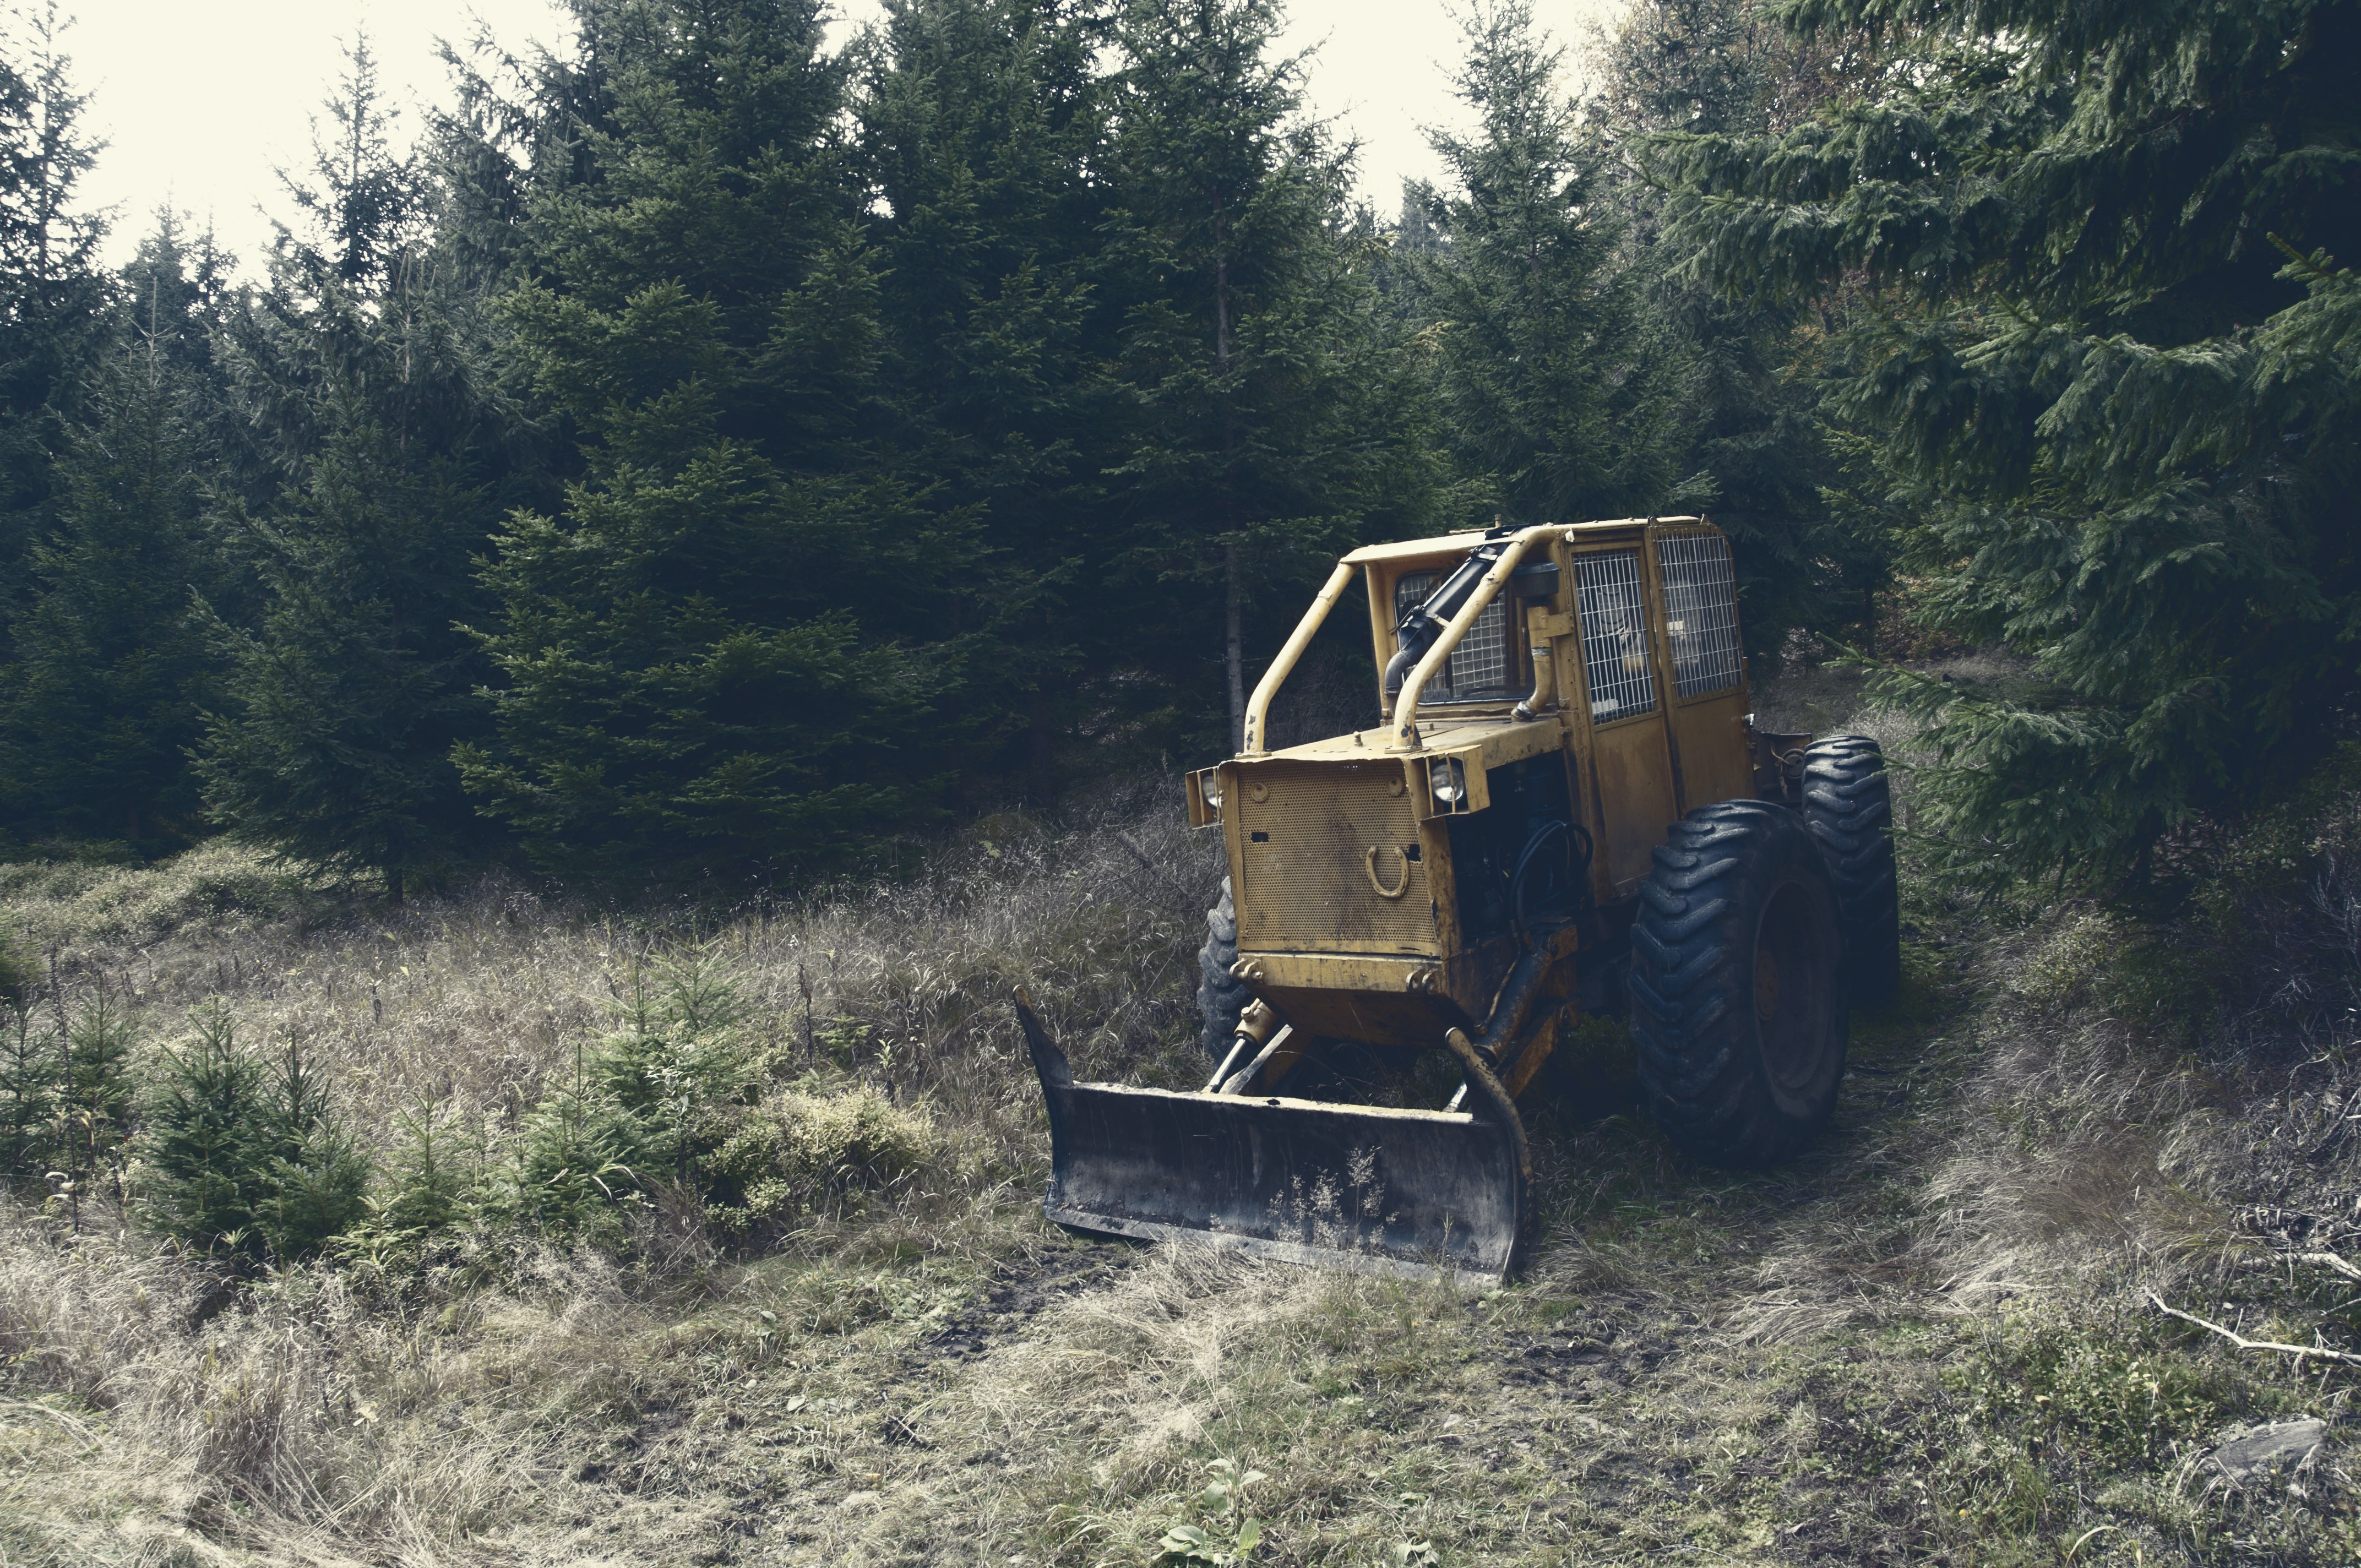 Bulldozer does construction taking down trees in the forest